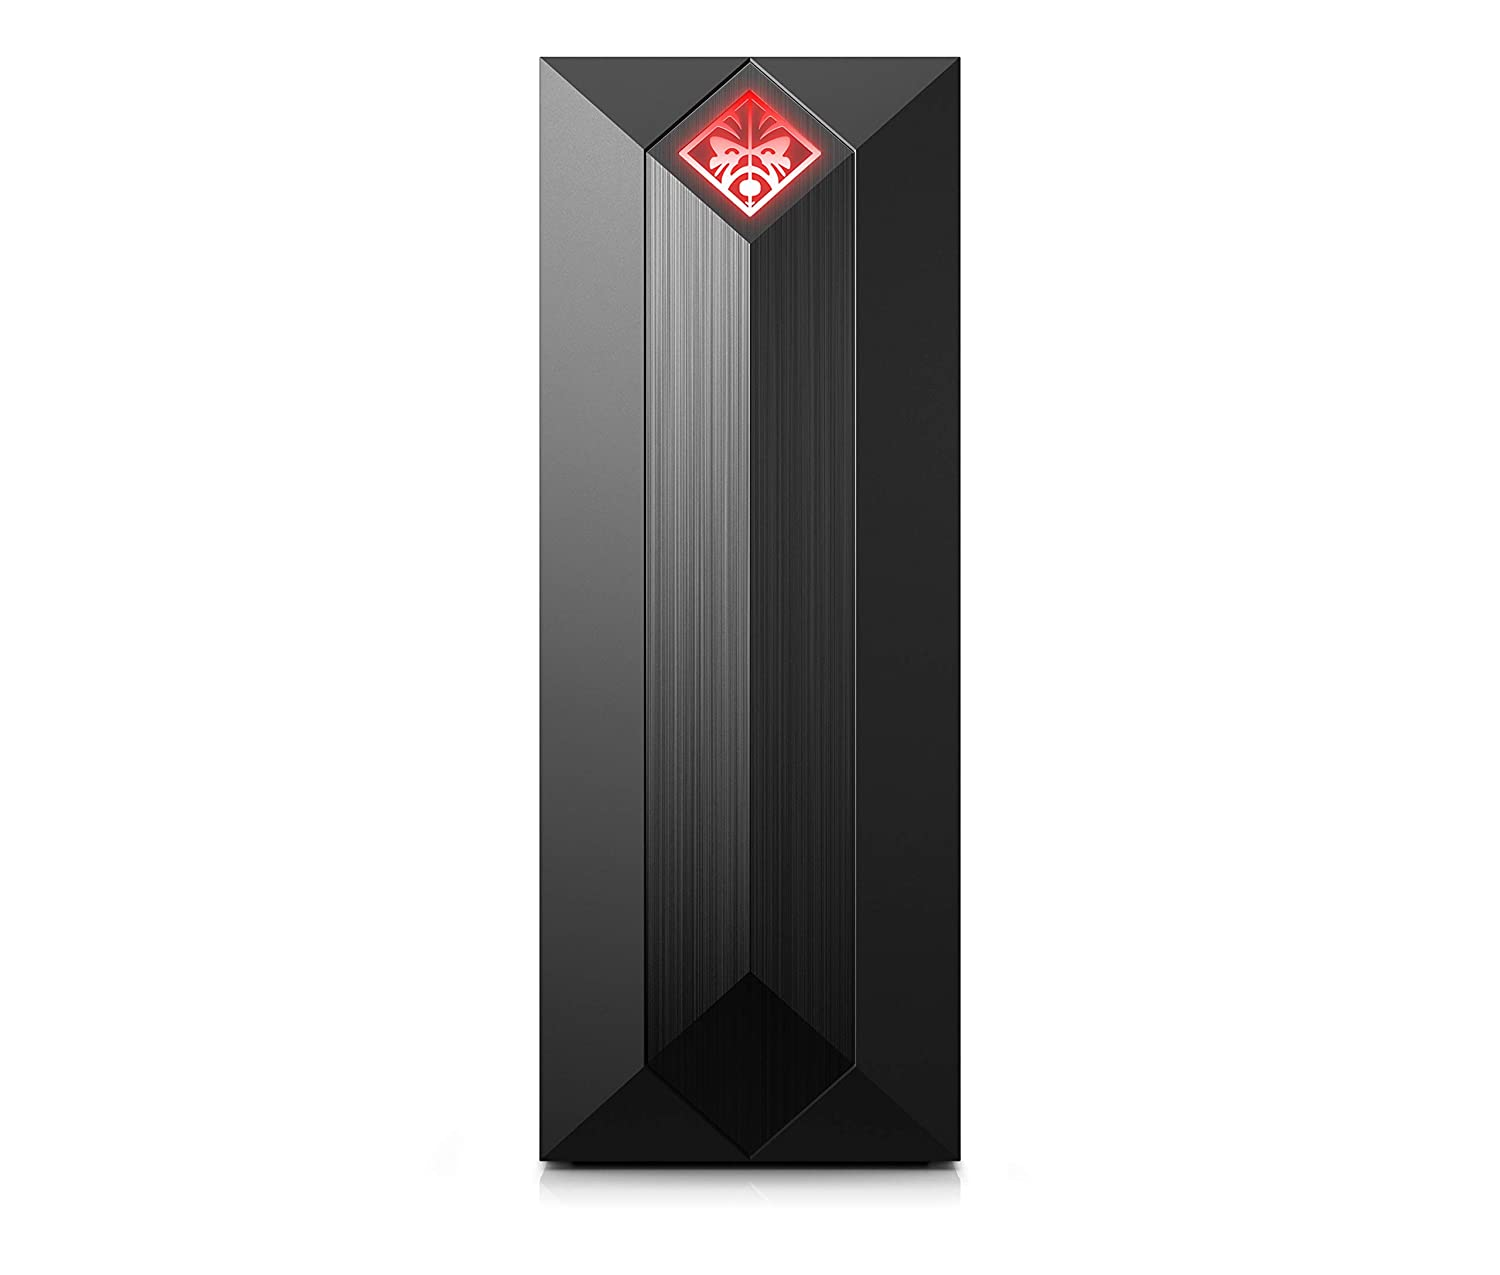 HP OMEN 875-0029ng 3,2 GHz AMD Ryzen 7 2700 Negro Escritorio PC - Ordenador de sobremesa (3,2 GHz, AMD Ryzen 7, 2700, 16 GB, 1256 GB, Windows 10 Home)